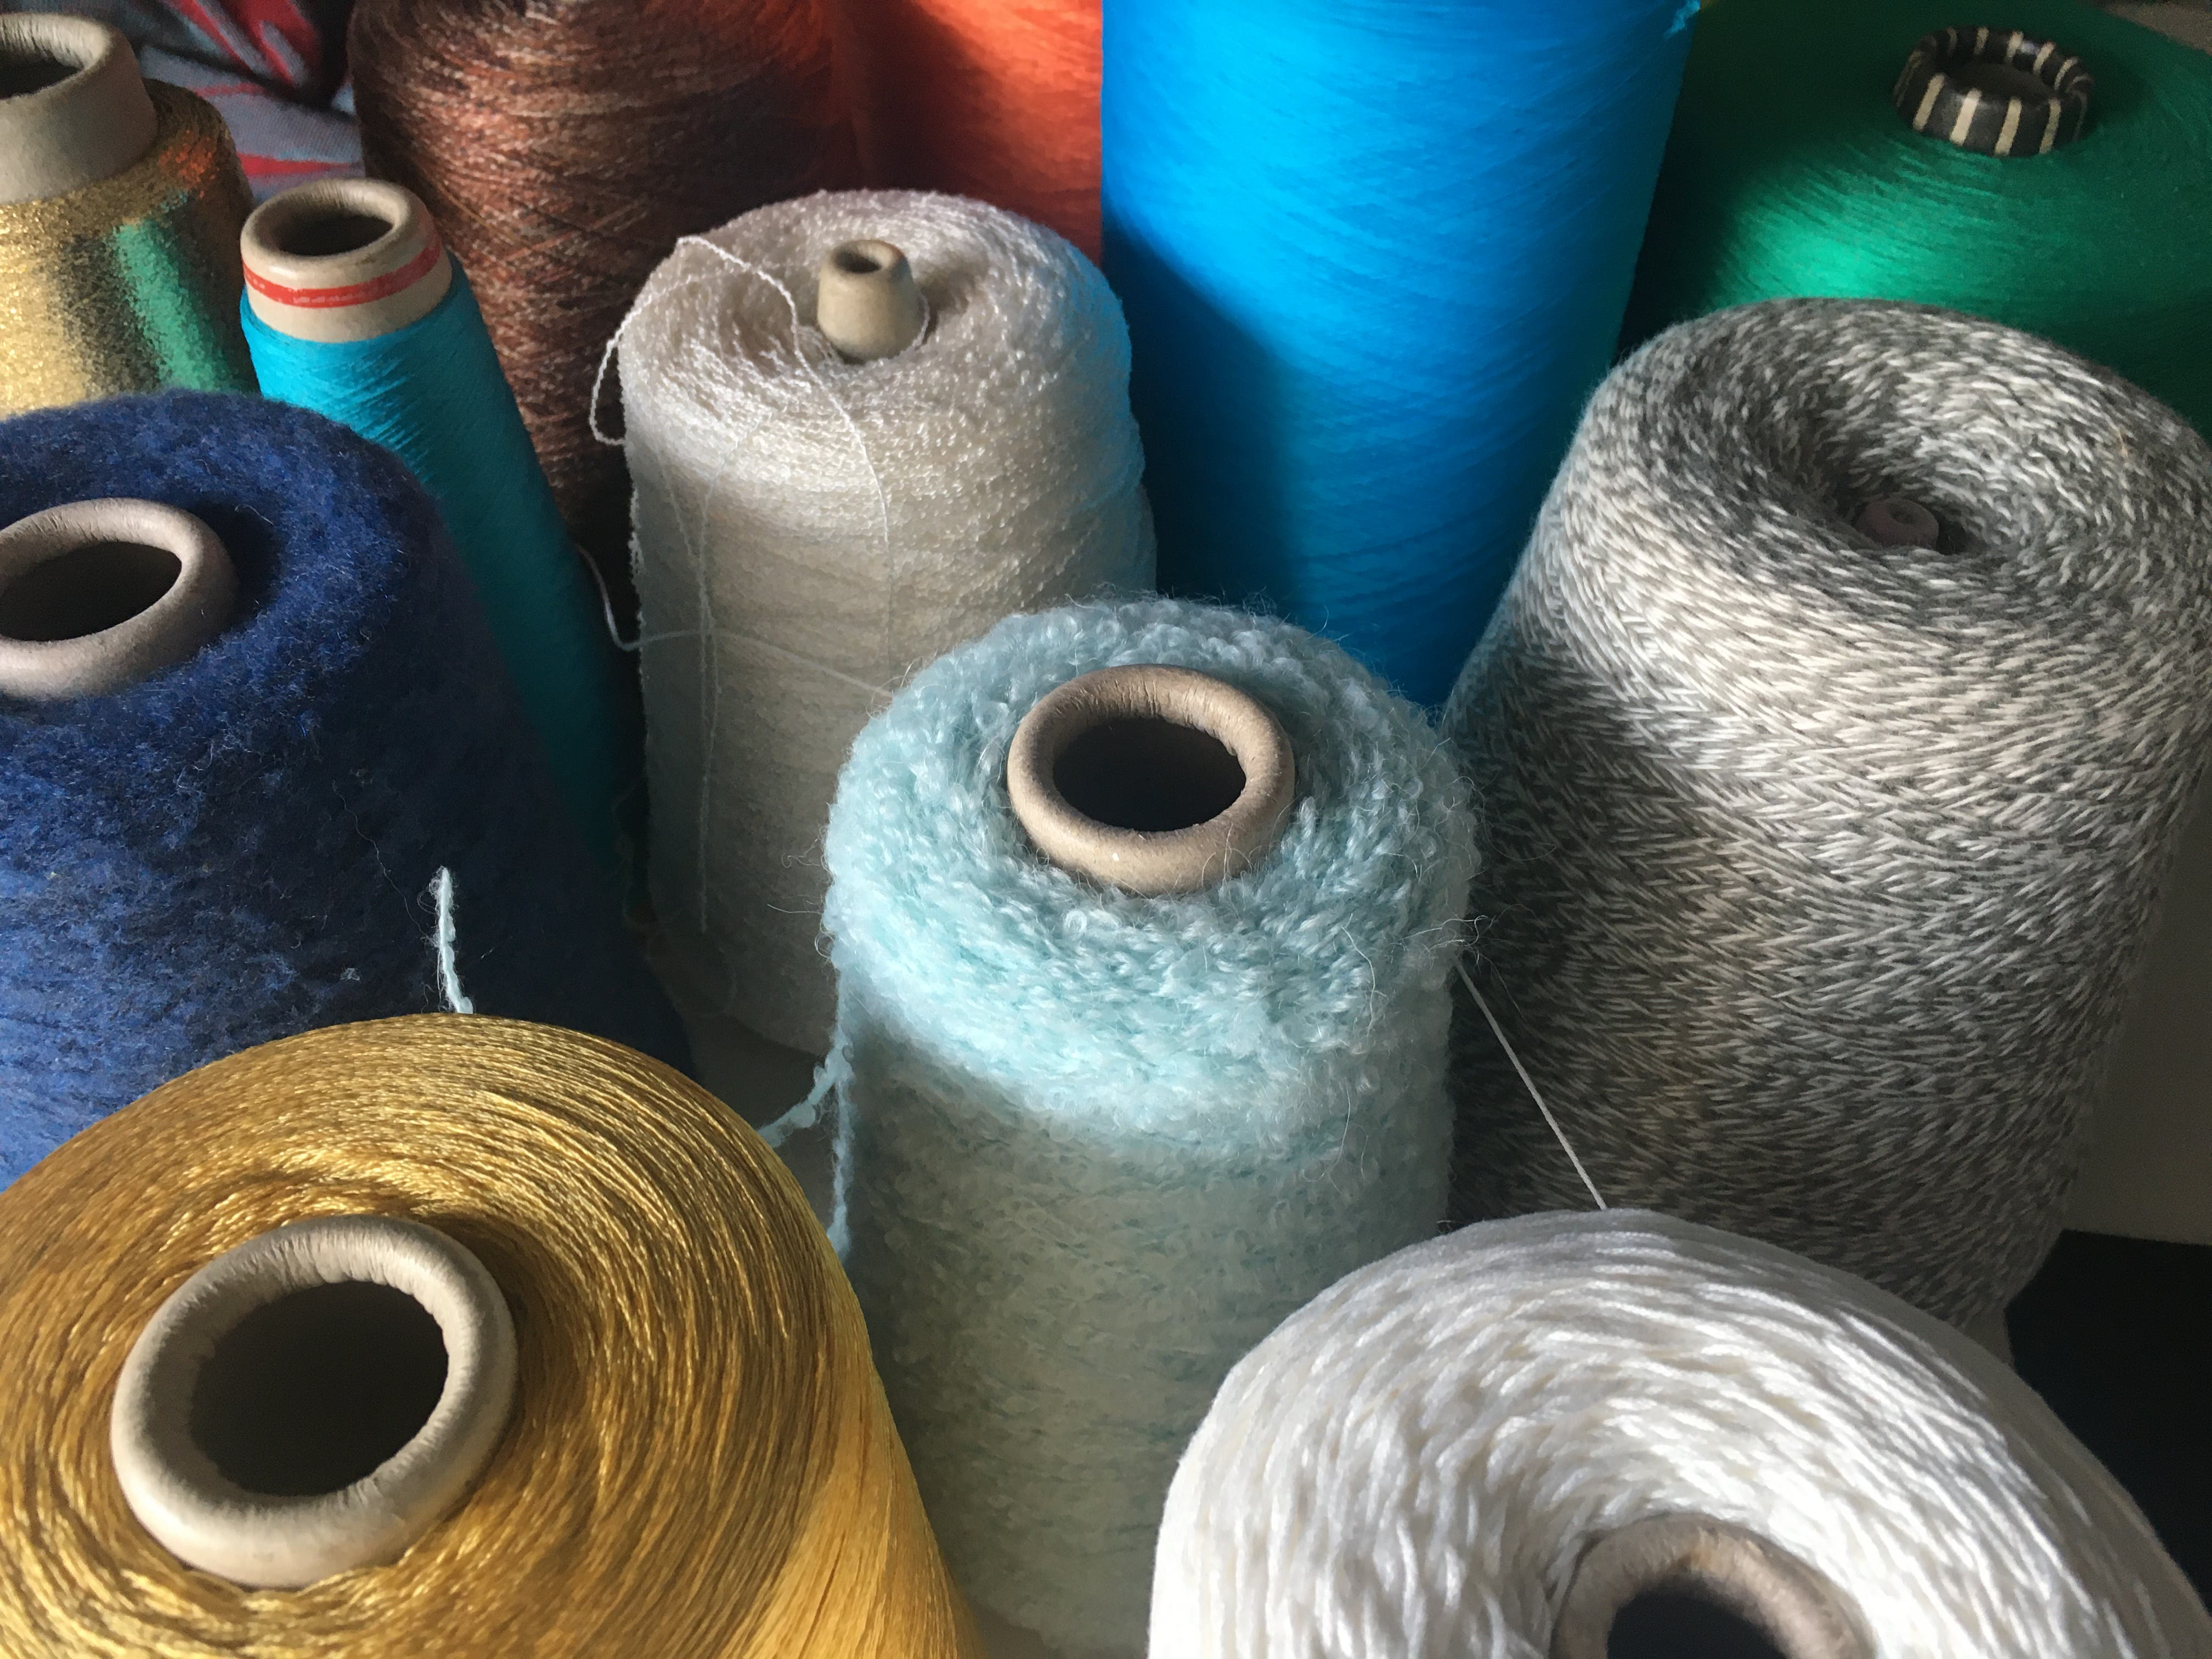 How many types of yarn are there?